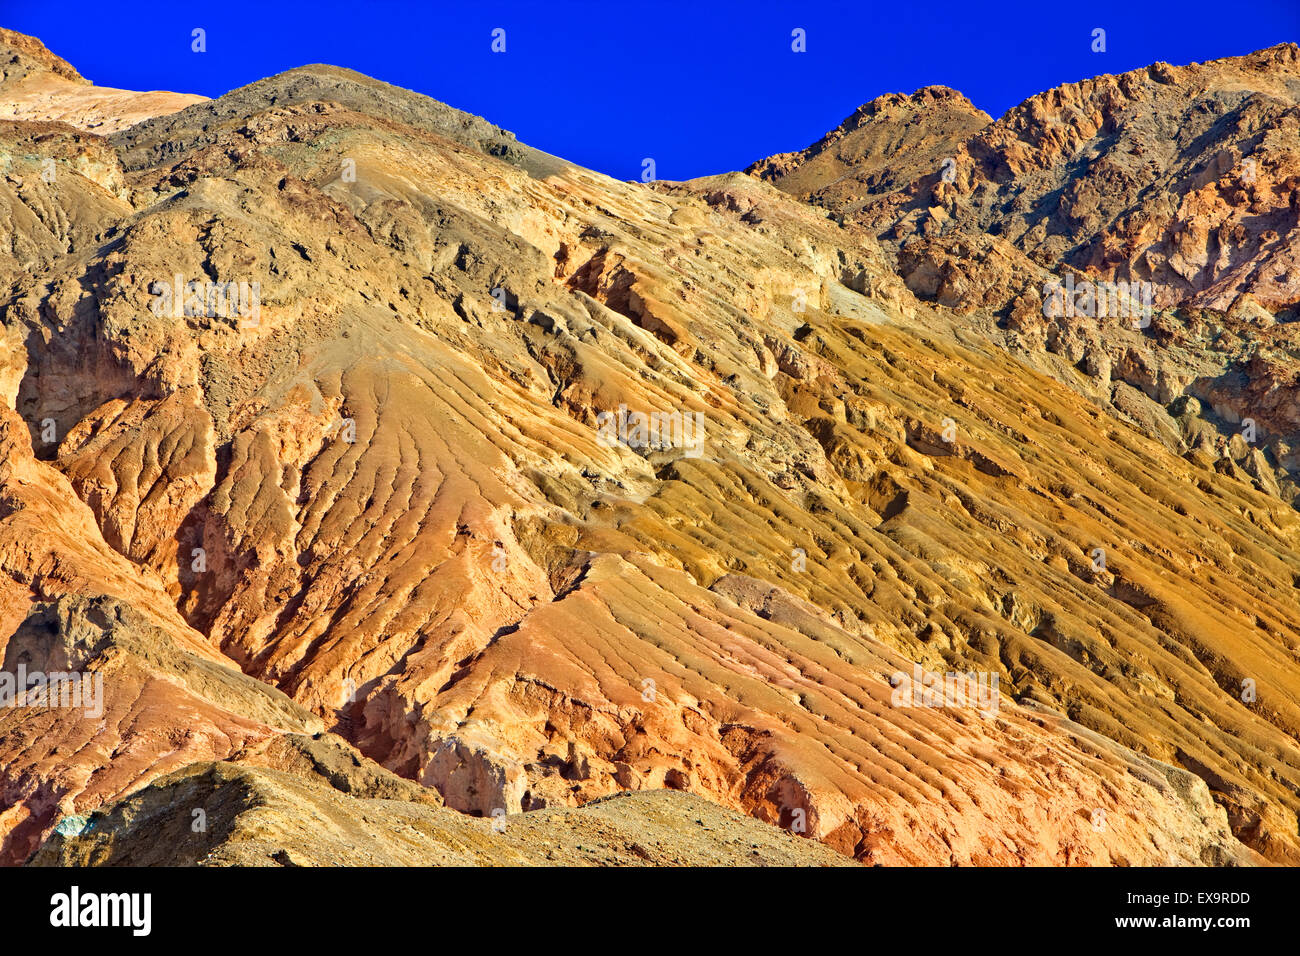 Face of Black Mountains with various colors of rock (different minerals), Along Artists Drive, Artists Palette, - Stock Image